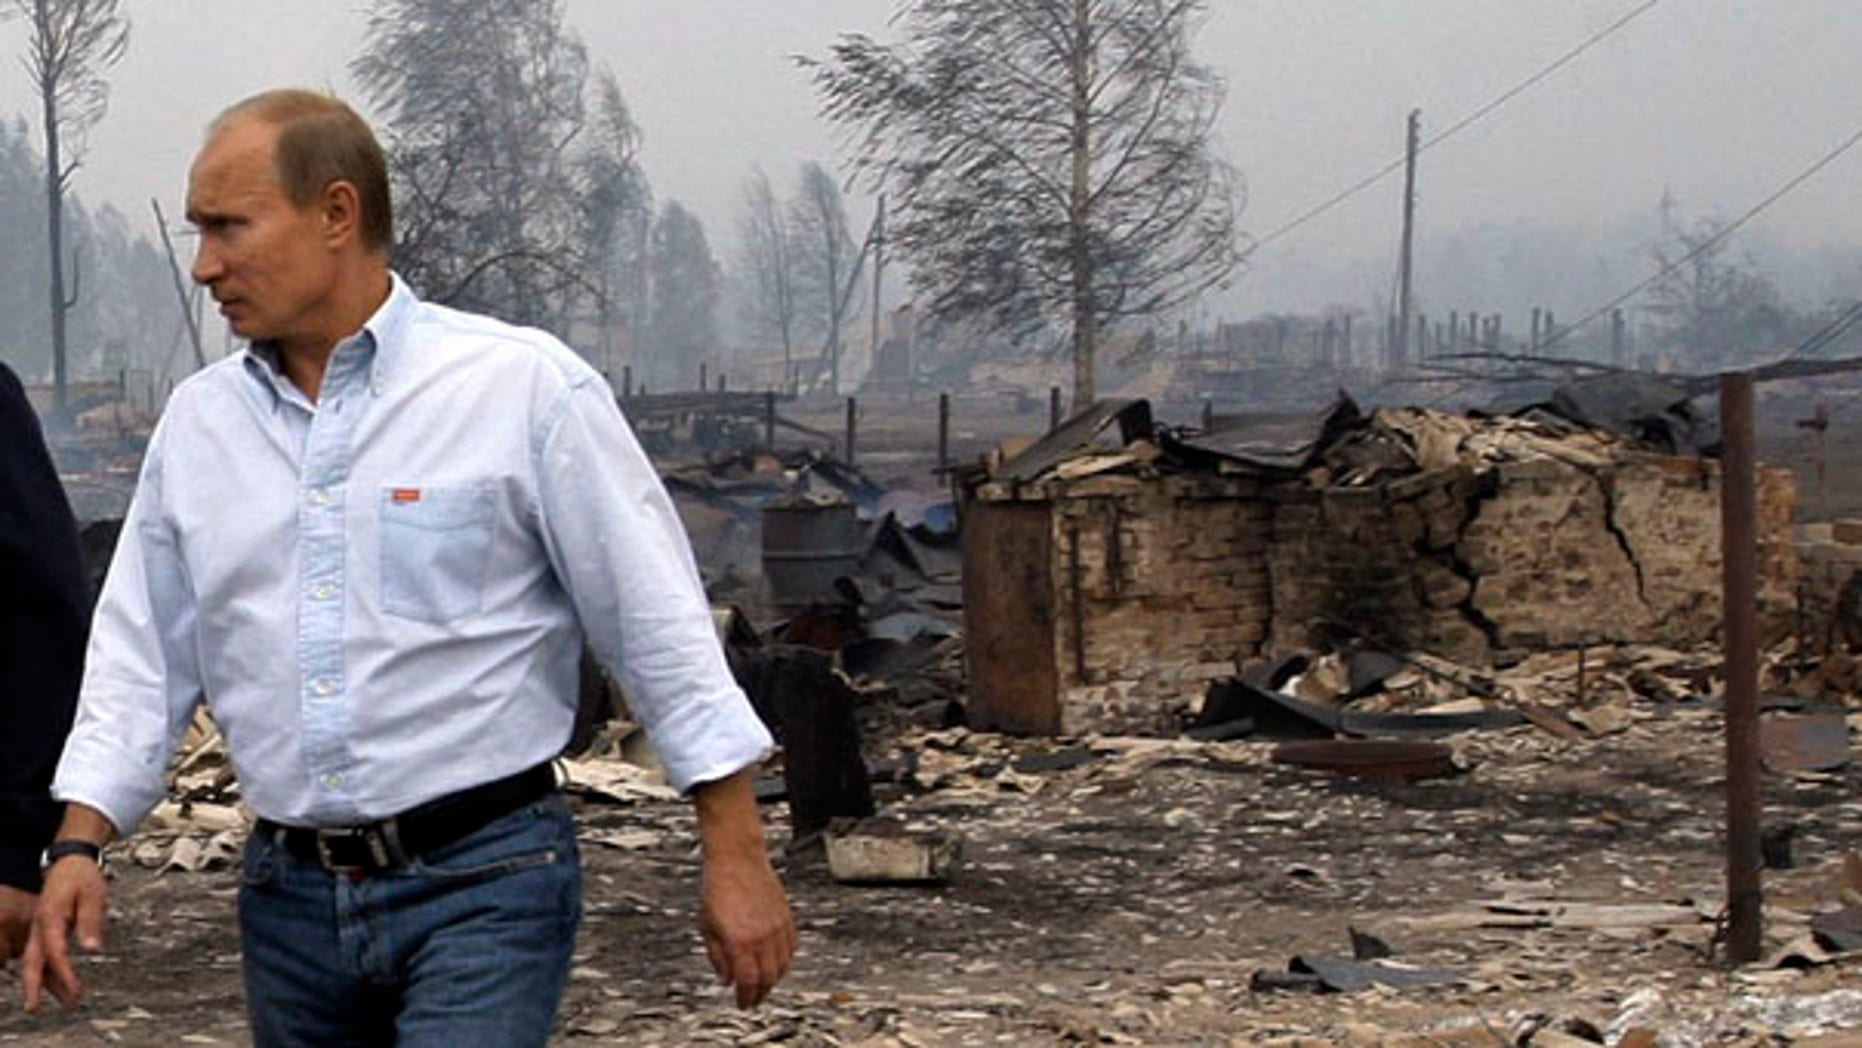 July 30: Russian Prime Minister Vladimir Putin tours the village of Verkhnyaya Vereya, where all 341 houses have burned to the ground.